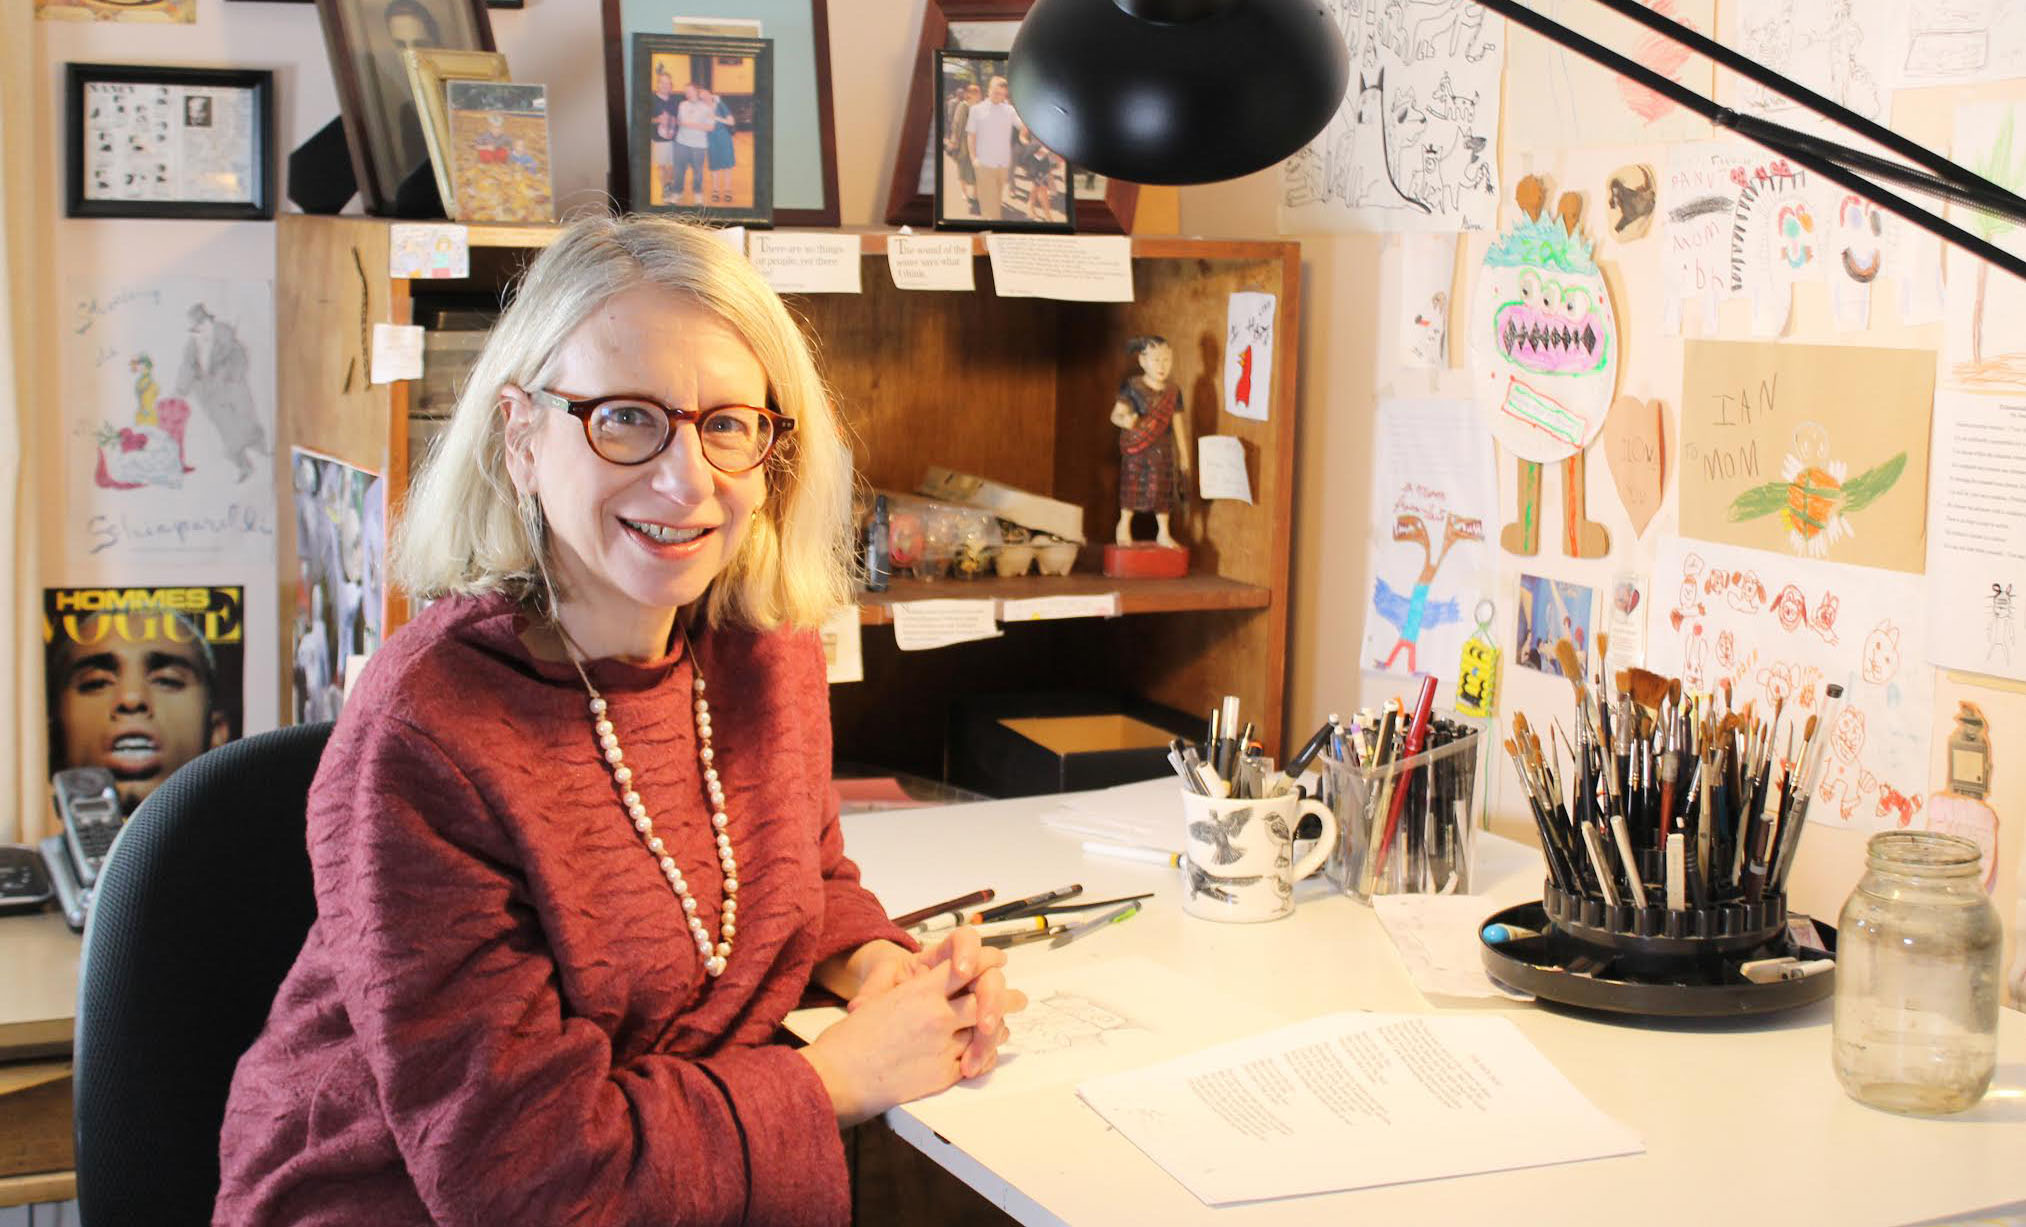 Roz Chast in her studio, surrounded by her cartoons and photos of her family